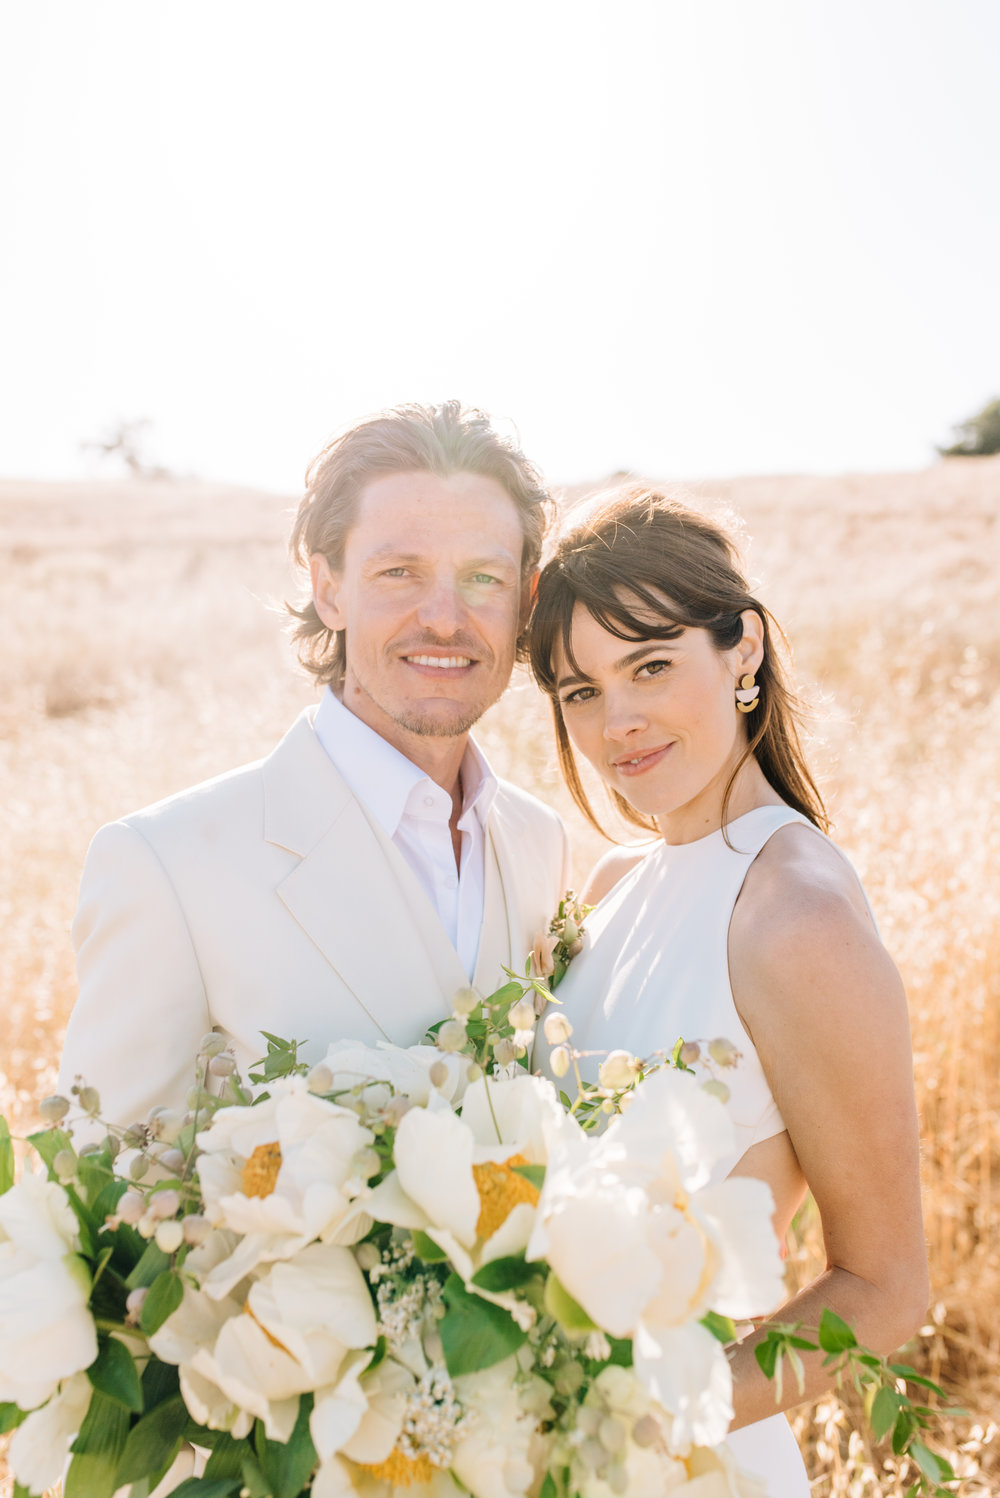 Santa Ynez Wedding, Boho Bride, White Tux Groom, Wedding Style.